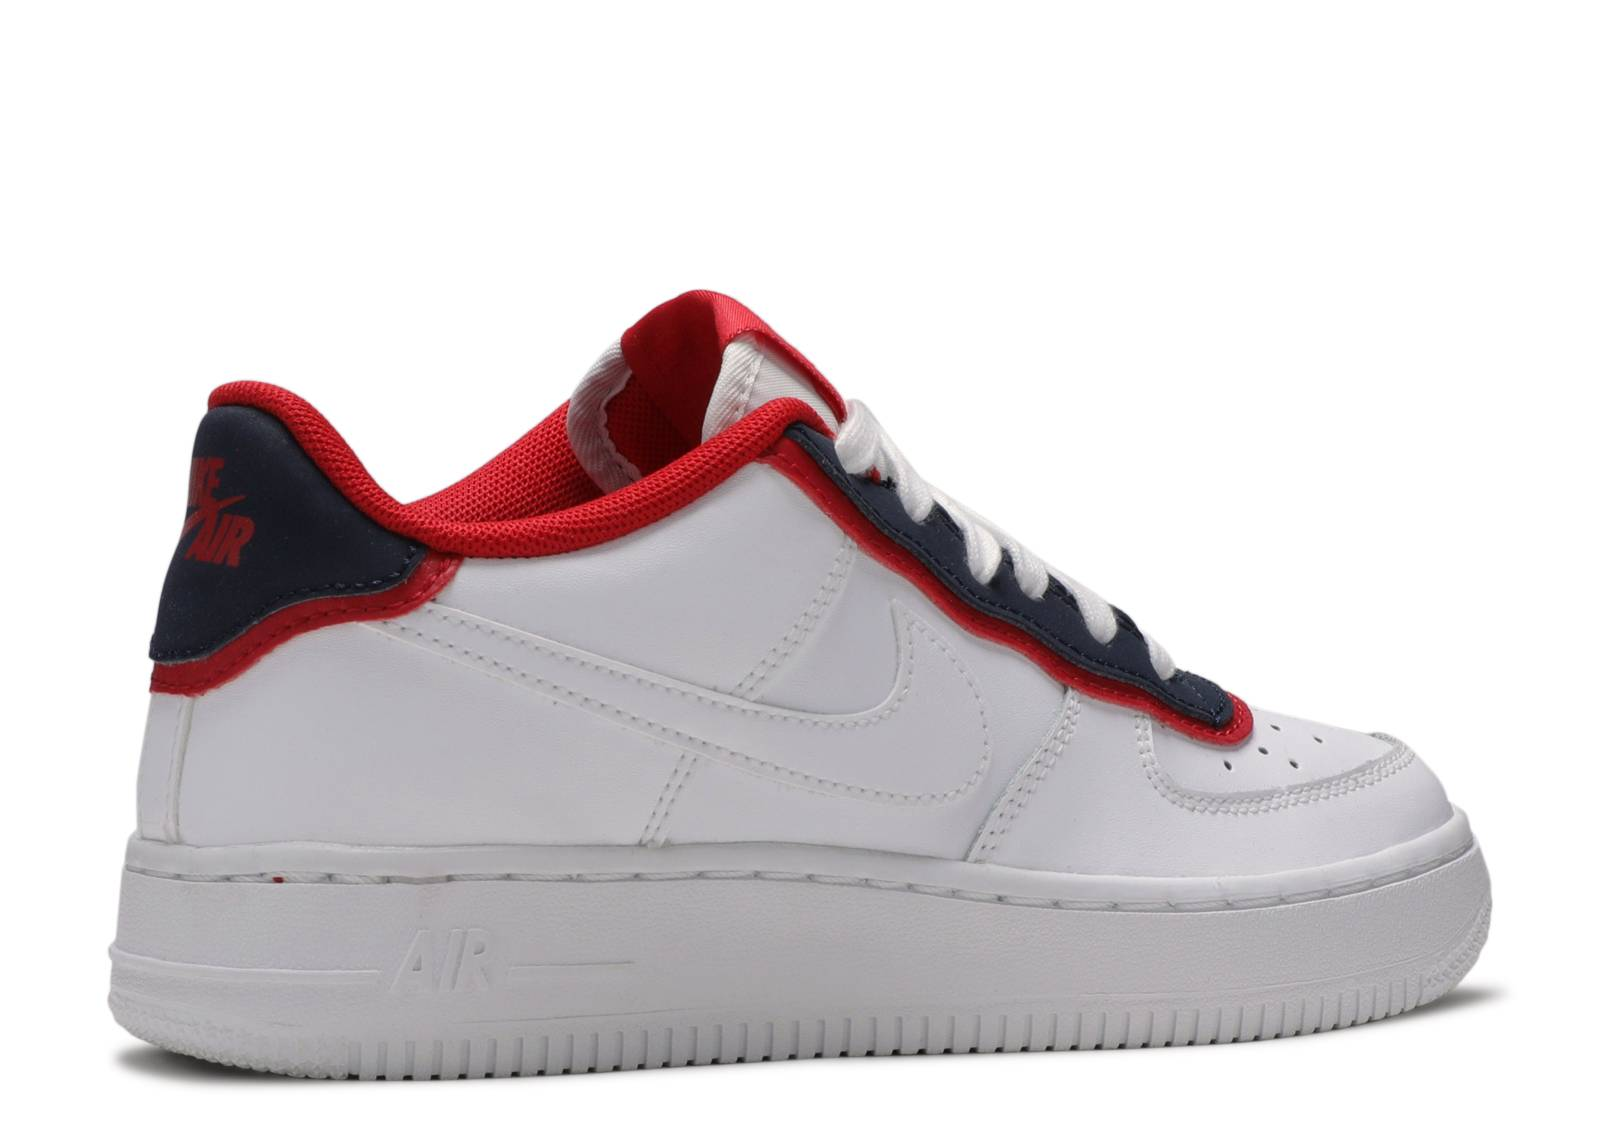 Nike Air Force 1 Low LV8 DBL GS University Red Obsidian White BV1084-101